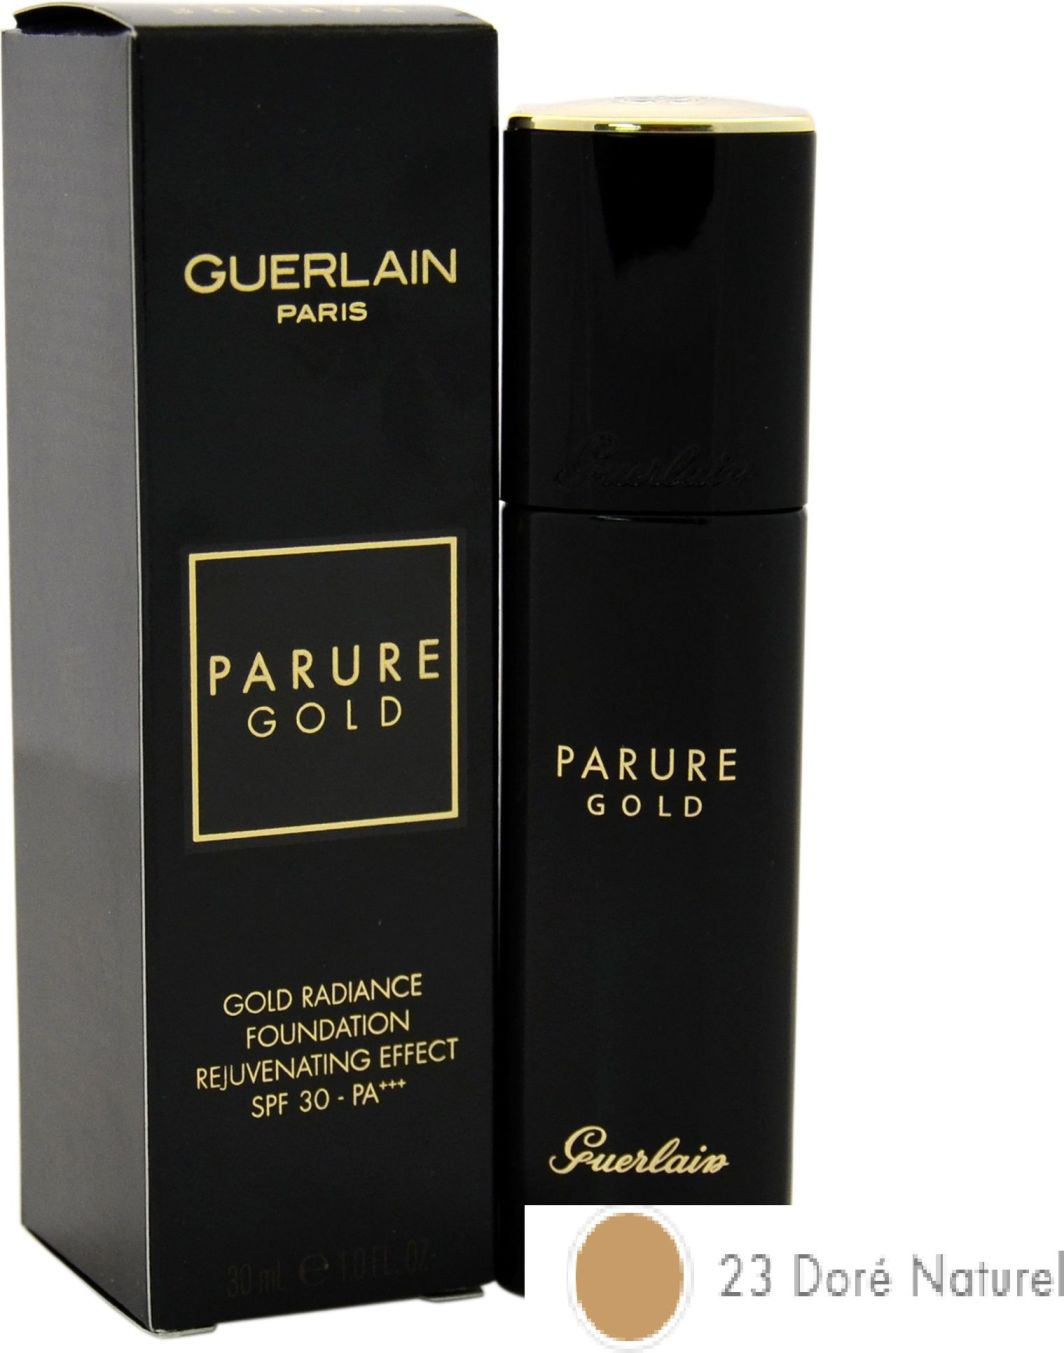 Guerlain Parure Gold Fluid Foundation podkład do twarzy 23 Dore Naturel 30ml 1